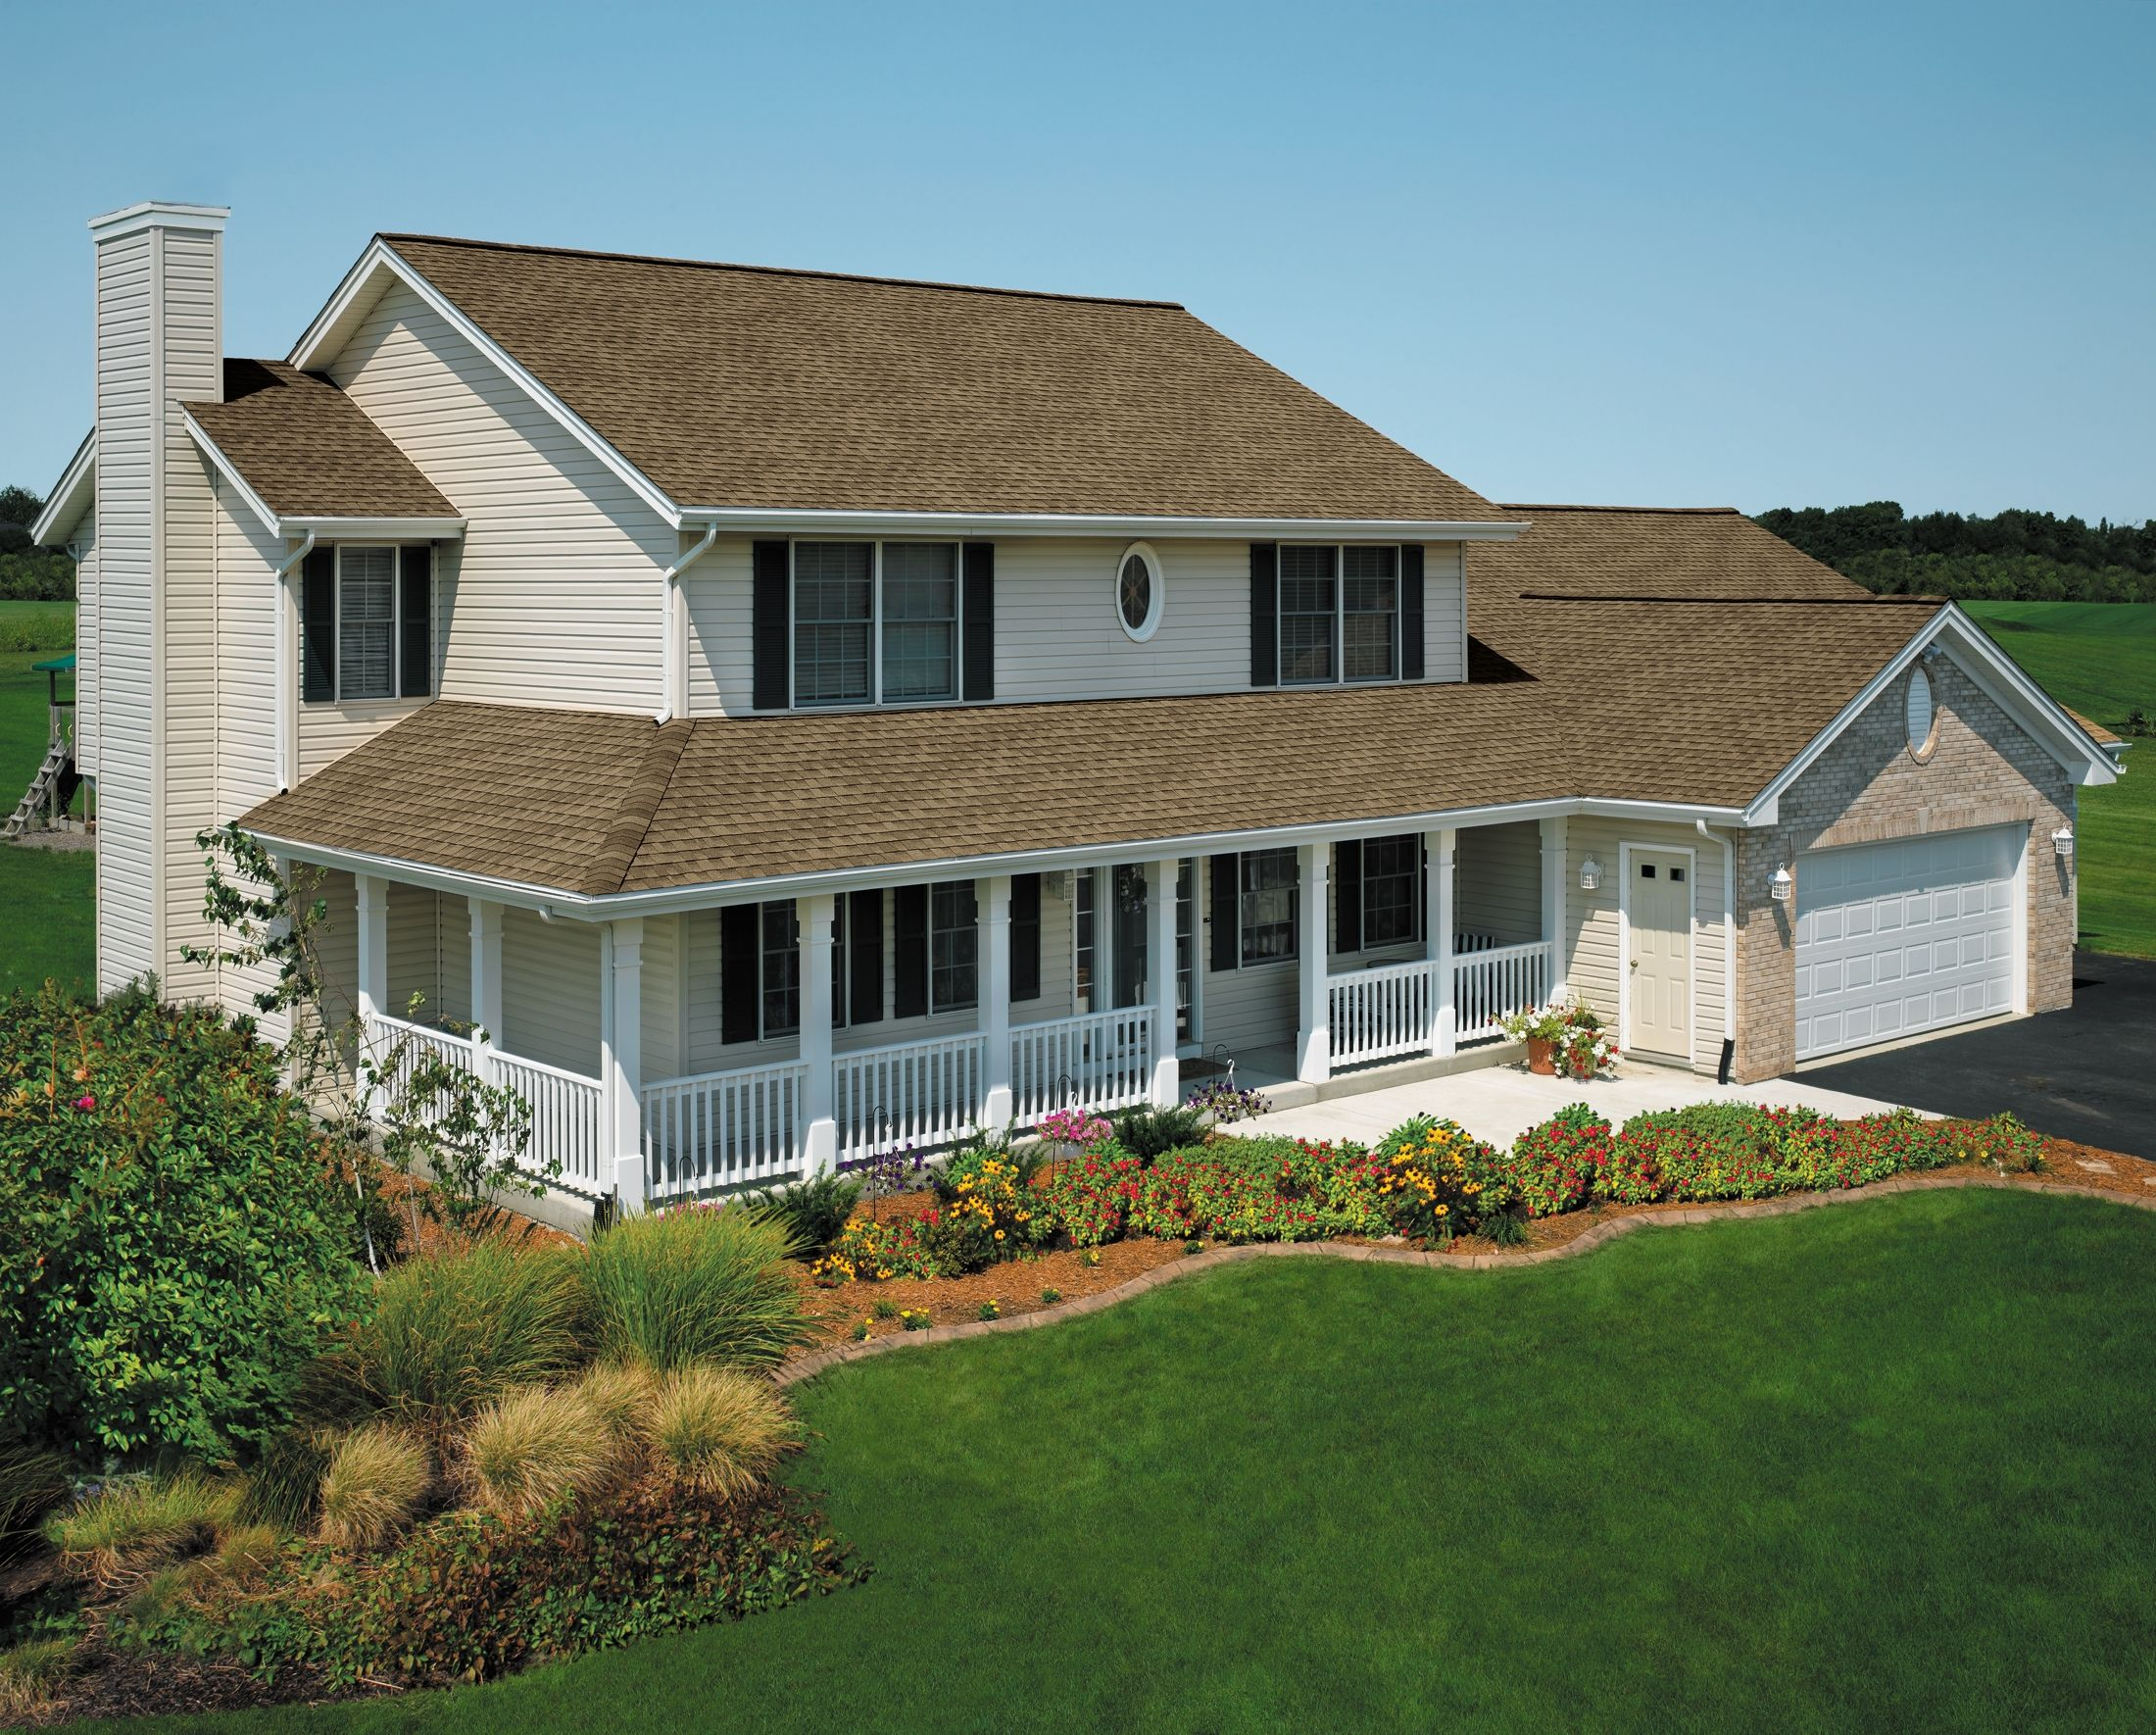 Best Gaf Timberline Natural Shadow Shakewood Roofing 400 x 300